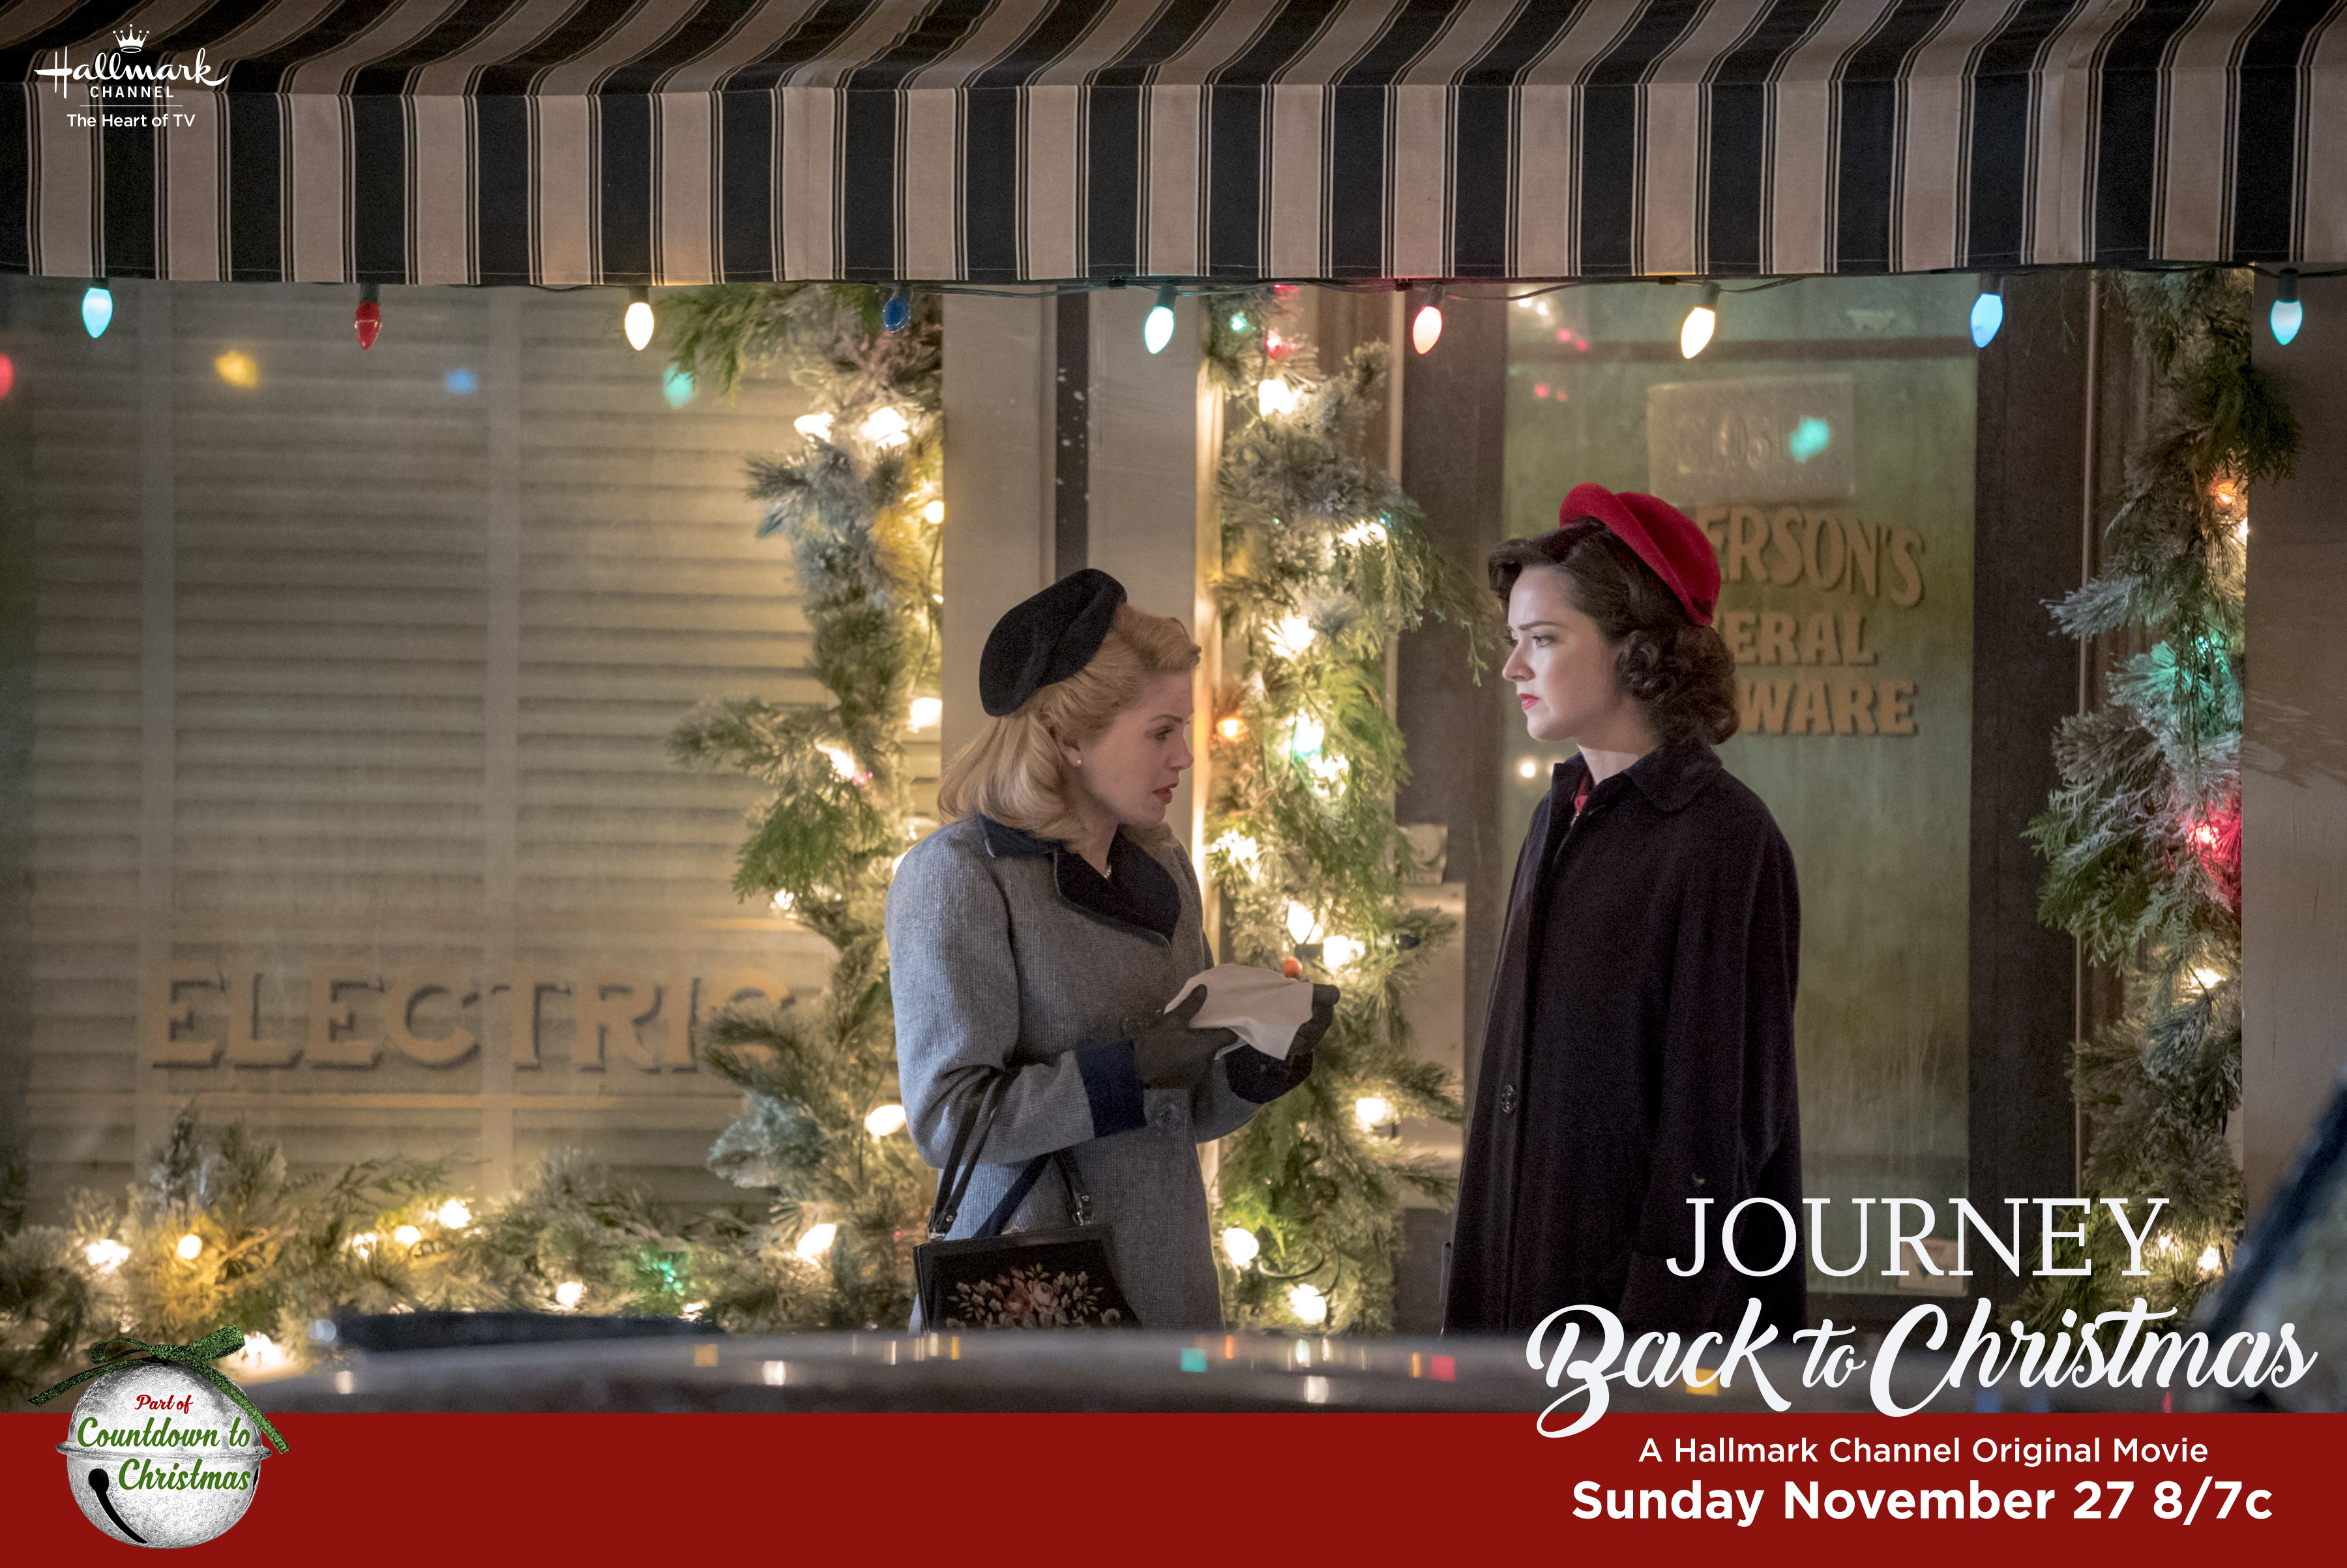 Until Christmas 70 Days Till Christmas.Hallmark Channel S Journey Back To Christmas Premiere S